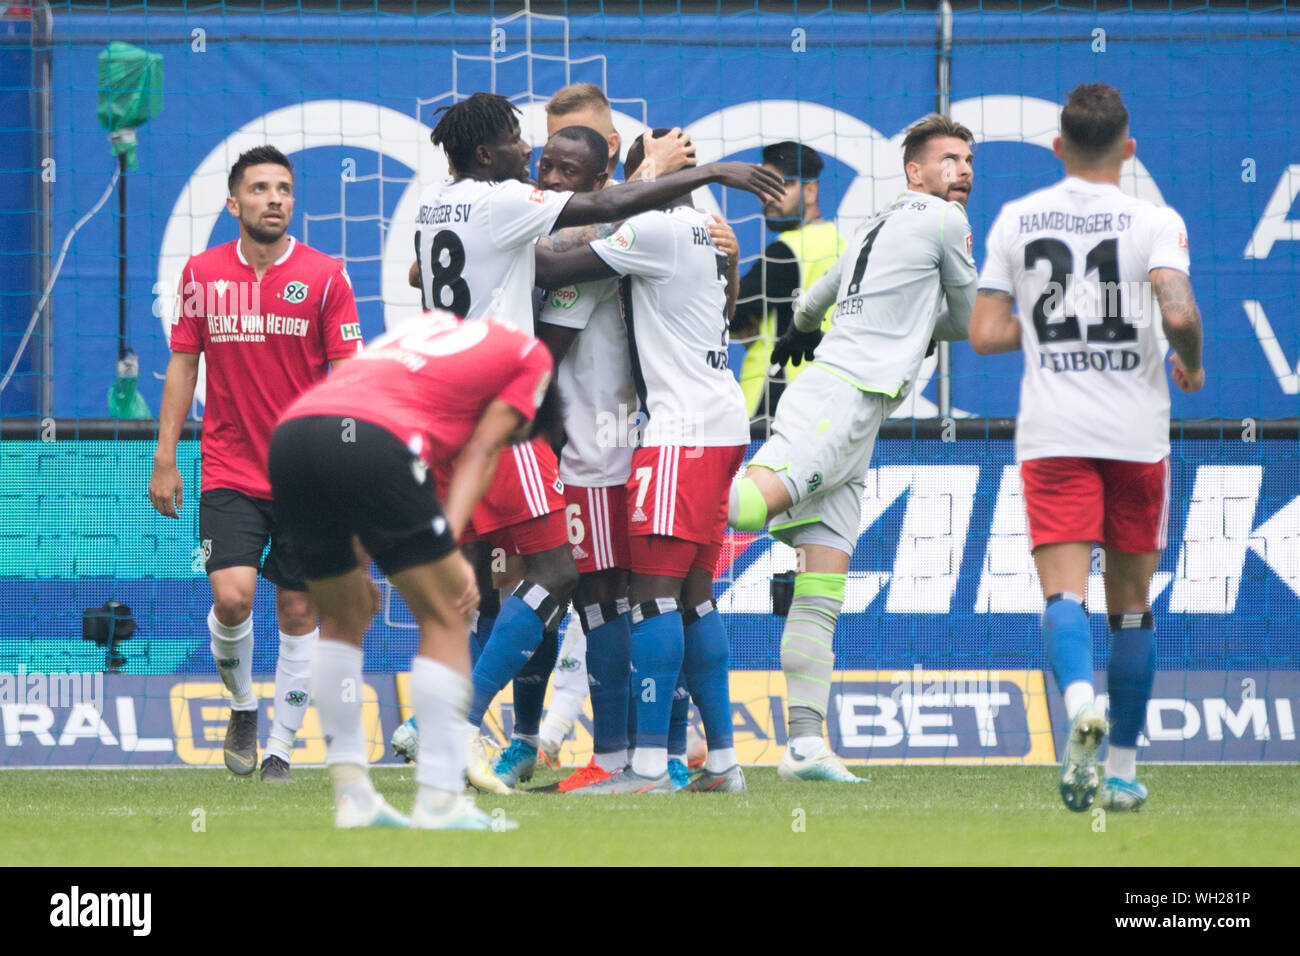 After The Goal To Make It 1 0 For Hamburg Hsv Hamburg Hamburg Players Cheer For Goalkeeper David Kinsombi 4th From Left Hh And The Hanoverian Players Are Disappointed Disappointed Disappointment Disappointment Sad